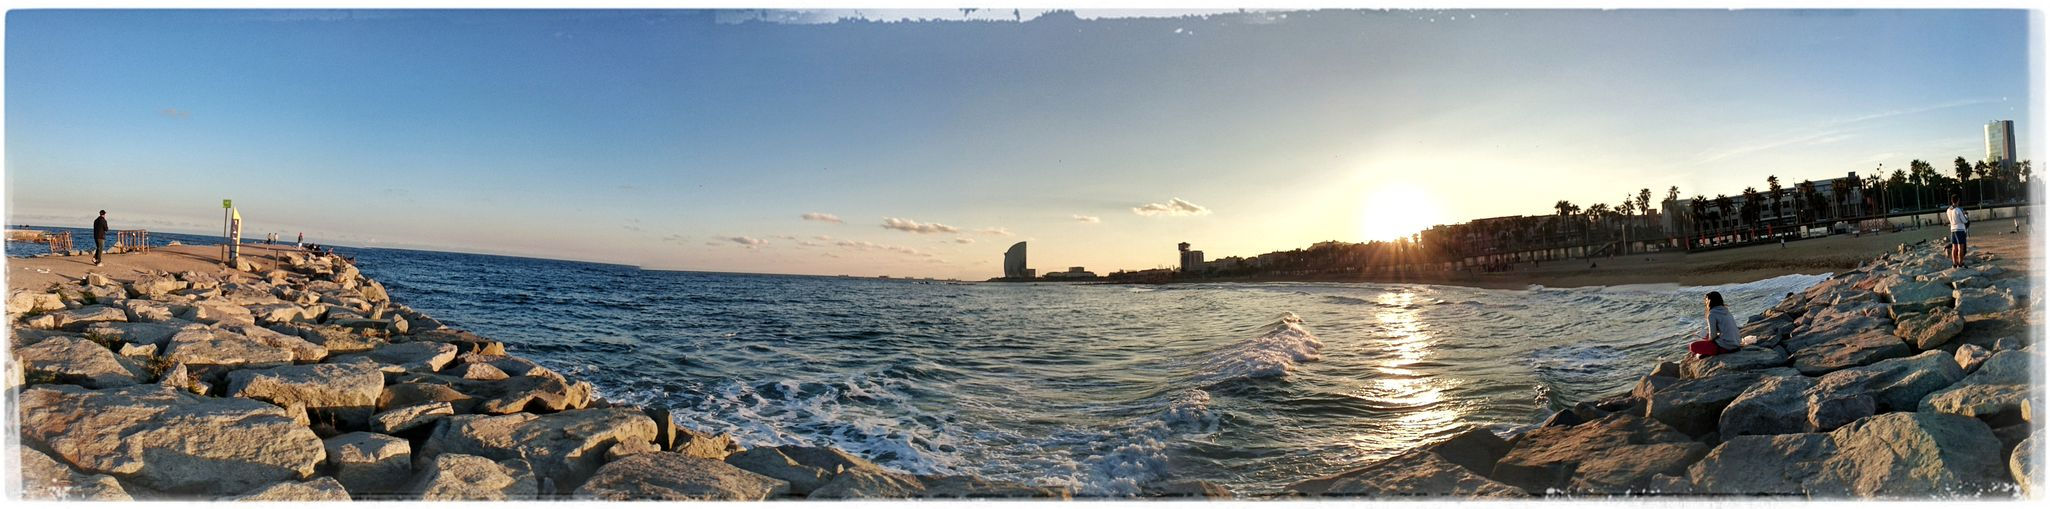 Sundowner Sunset_collection Sunset Sunshineaddicted Barceloneta Barceloneta Beach Barcelona Barcelonalove